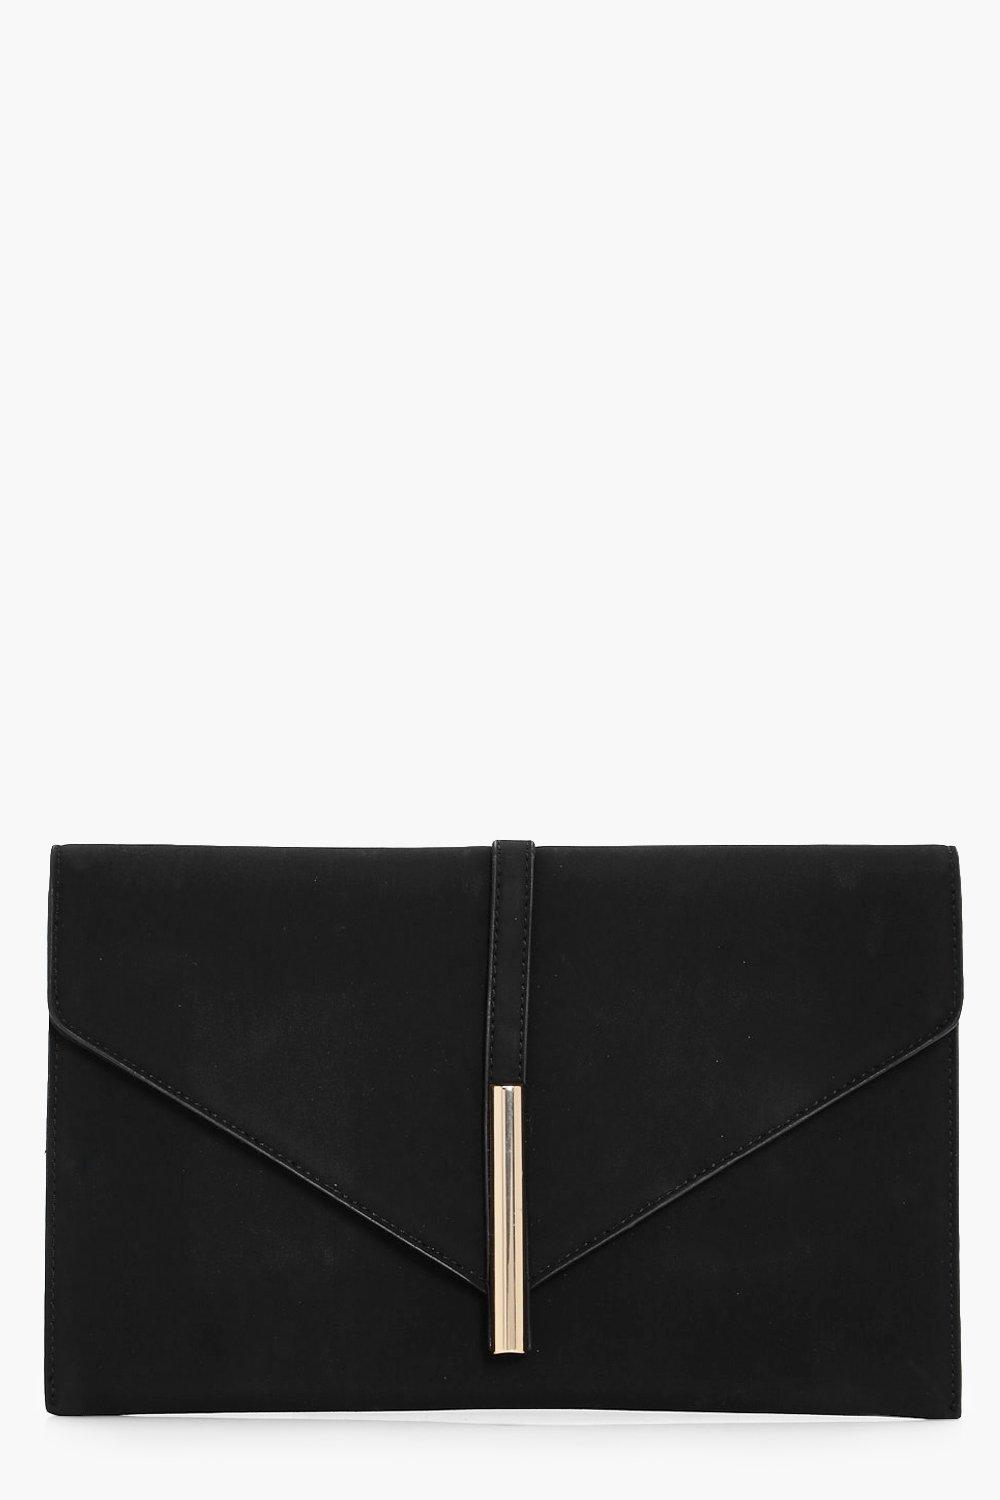 Metal Rod Envelope Clutch - black - Freya Metal Ro